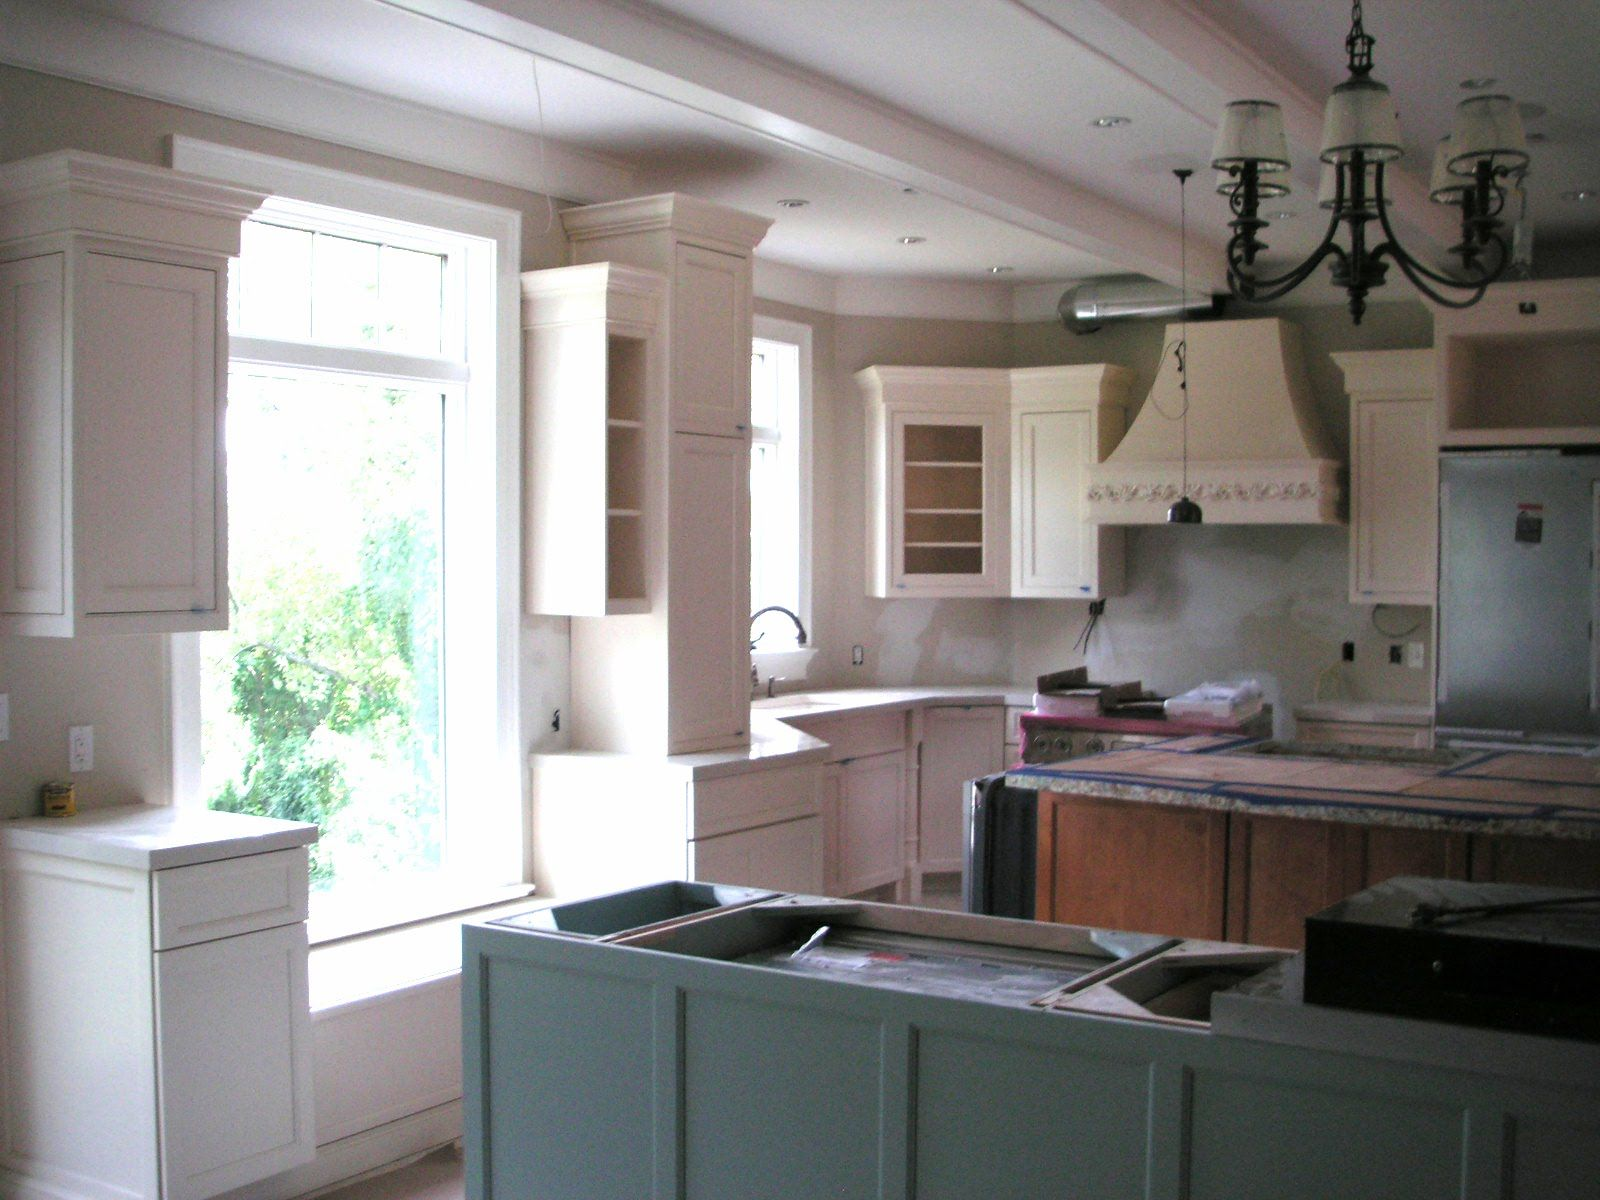 Color forte sherwin williams quietude ivory lace painted kitchen cabinets